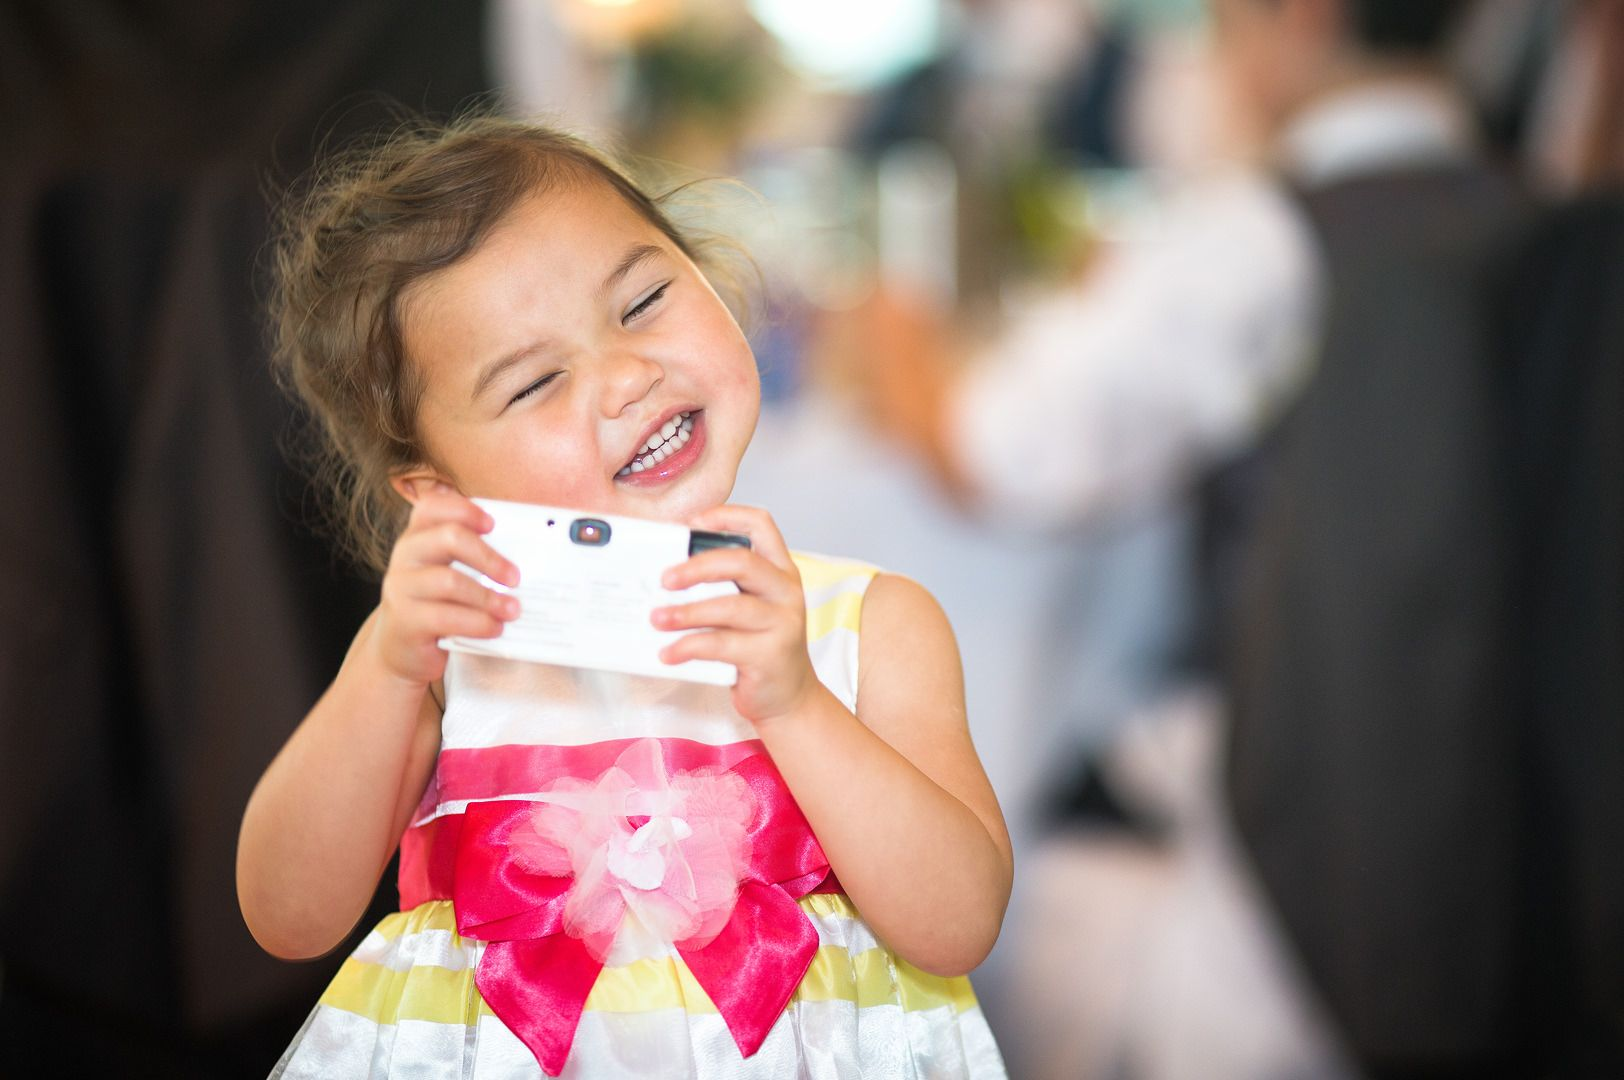 A little oriental girl takes a photo with her small camera at a wedding inside The Lowry venue in Manchester